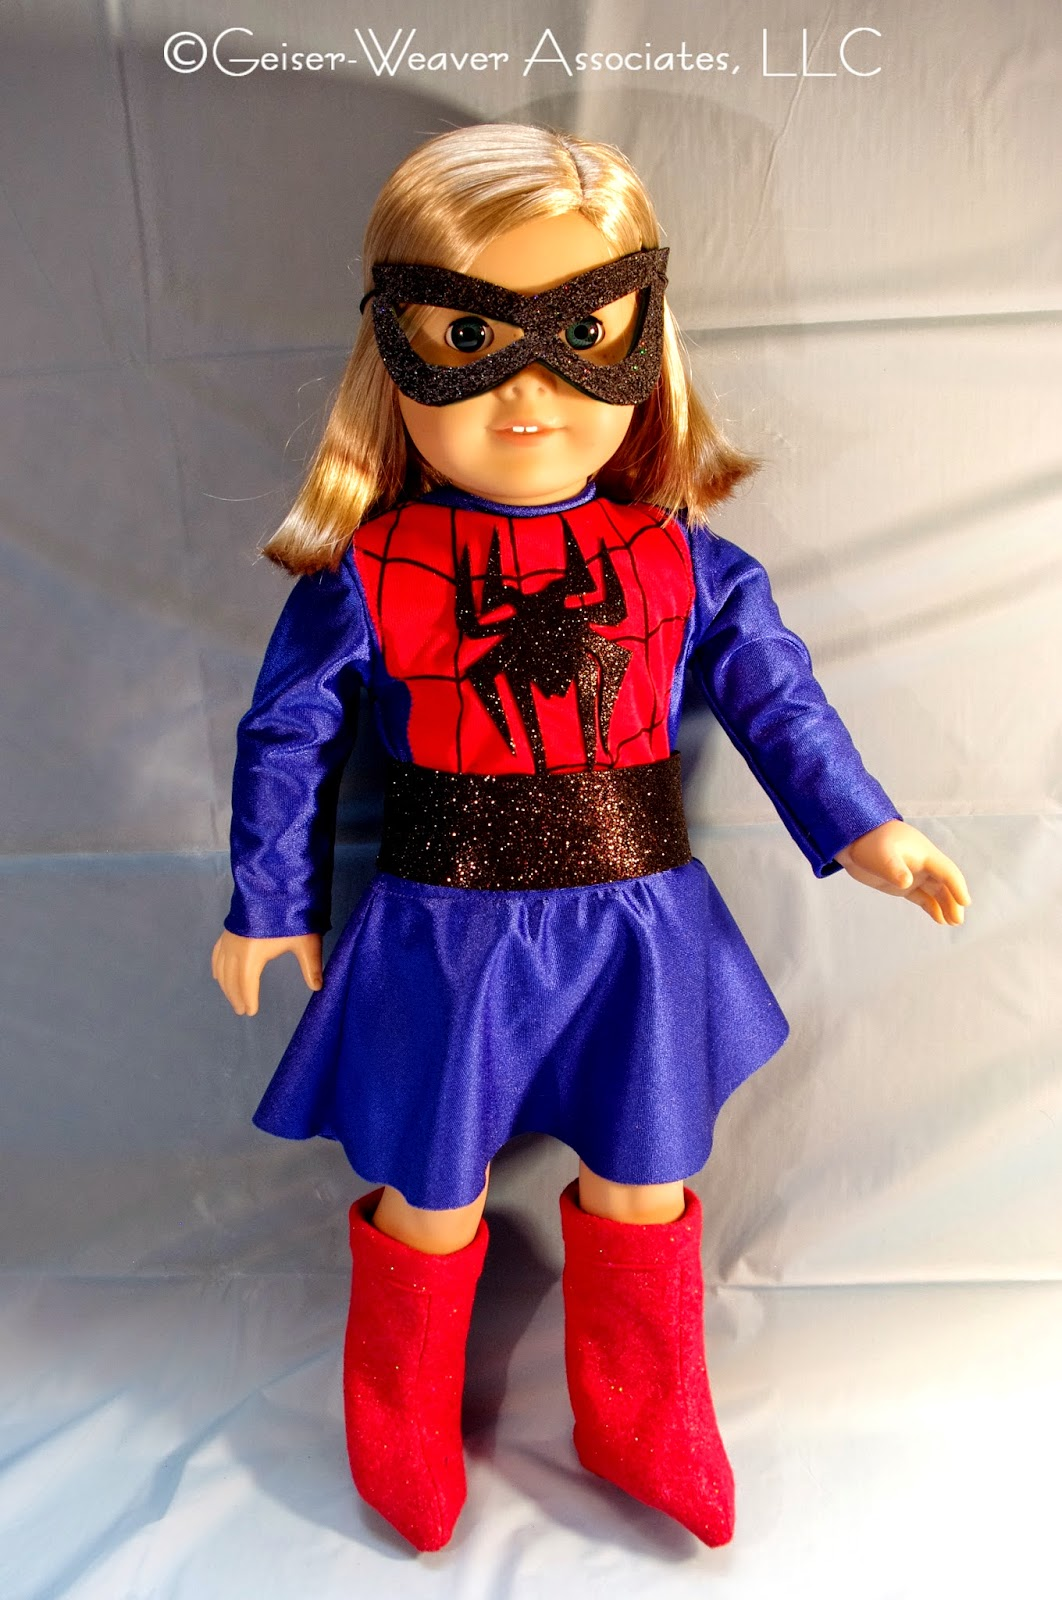 Spider Girl-type costume for dolls by Geiser-Weaver Associates, LLC